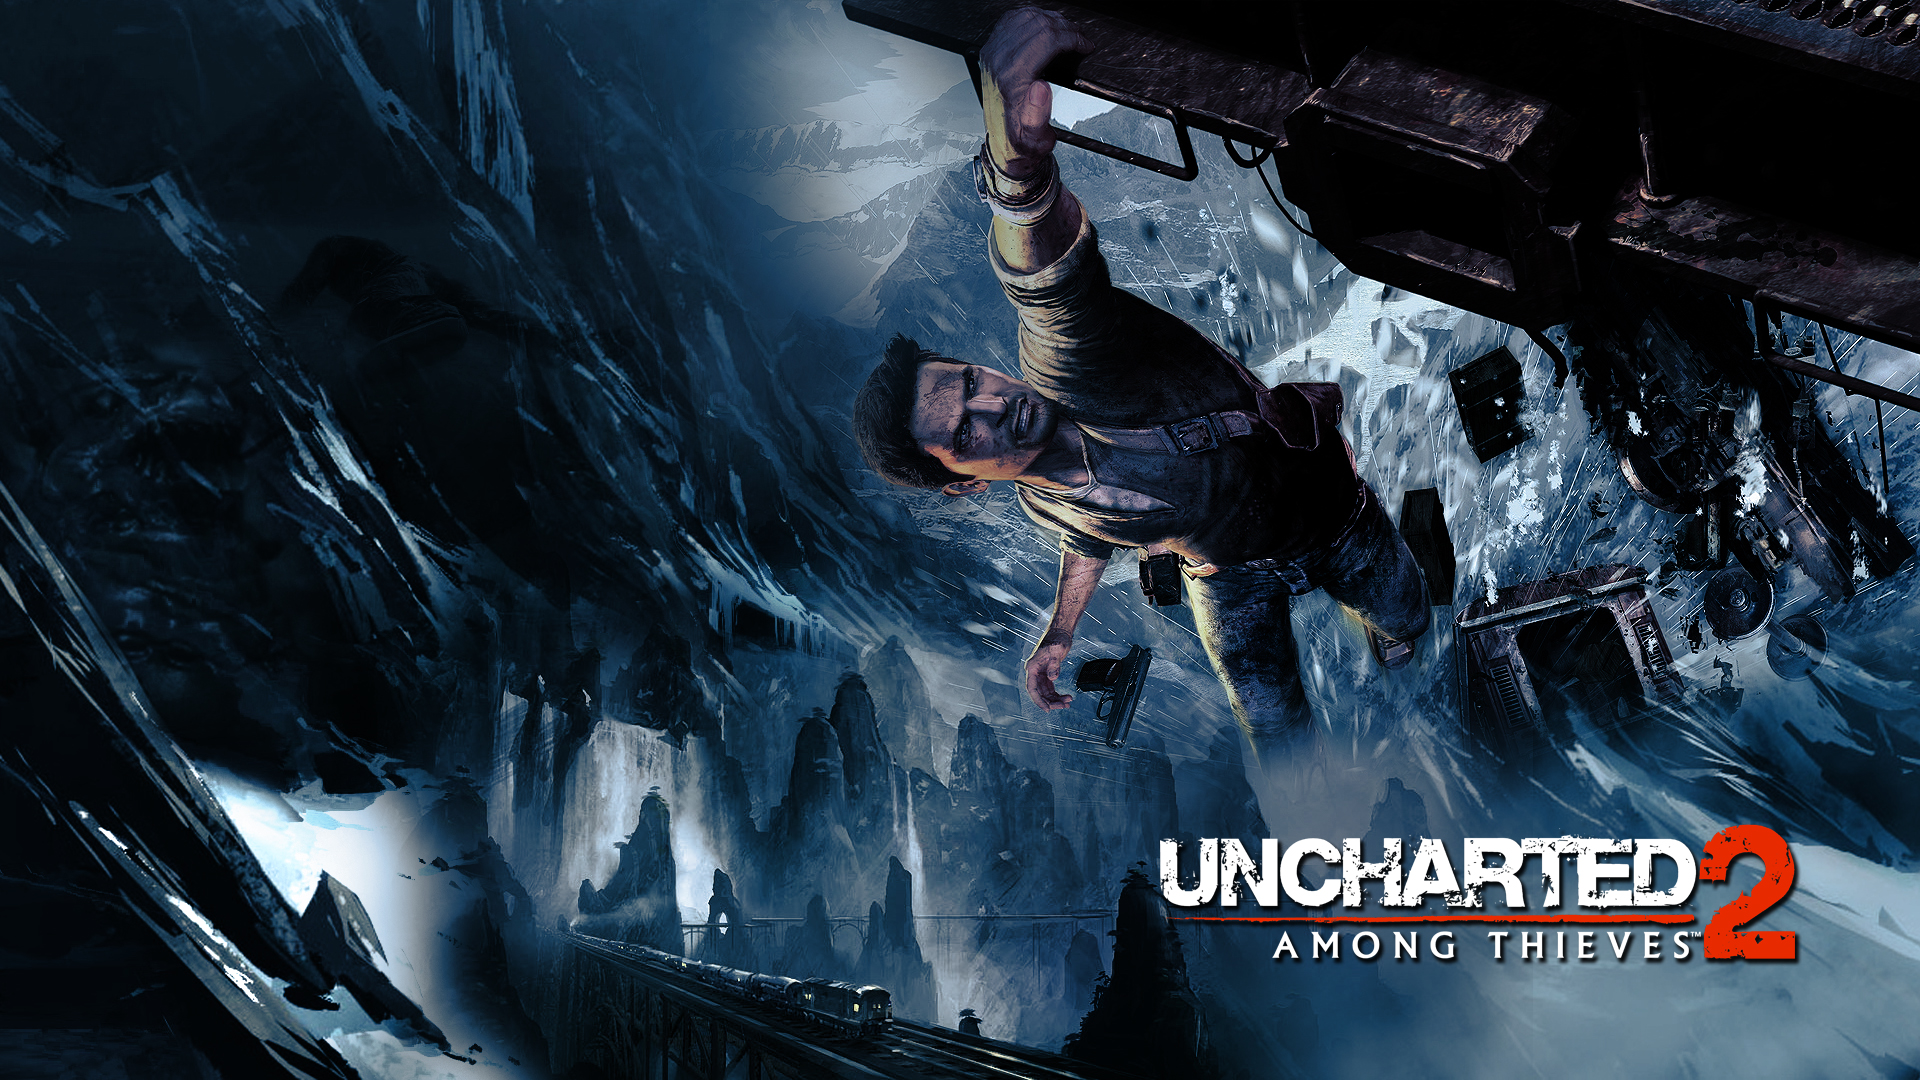 Uncharted 2 Among Thieves El reino de los ladrones